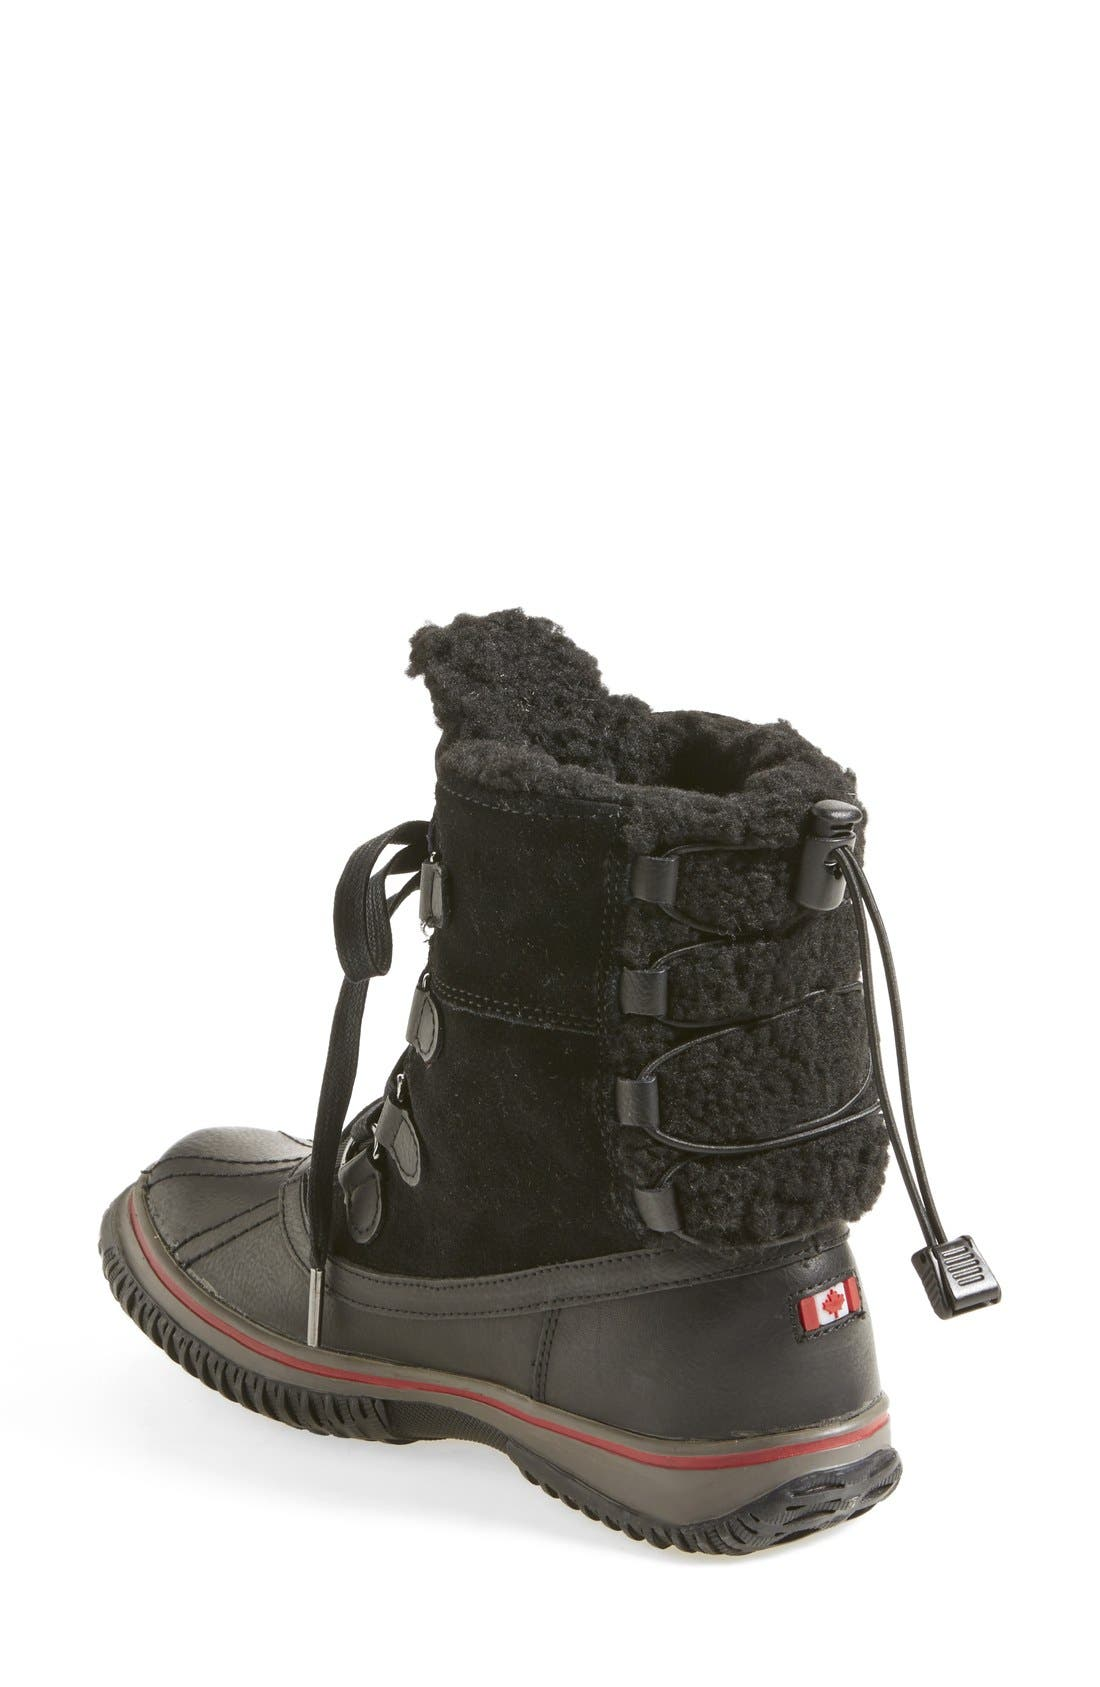 'Iceland' Winter Boot,                             Alternate thumbnail 2, color,                             001